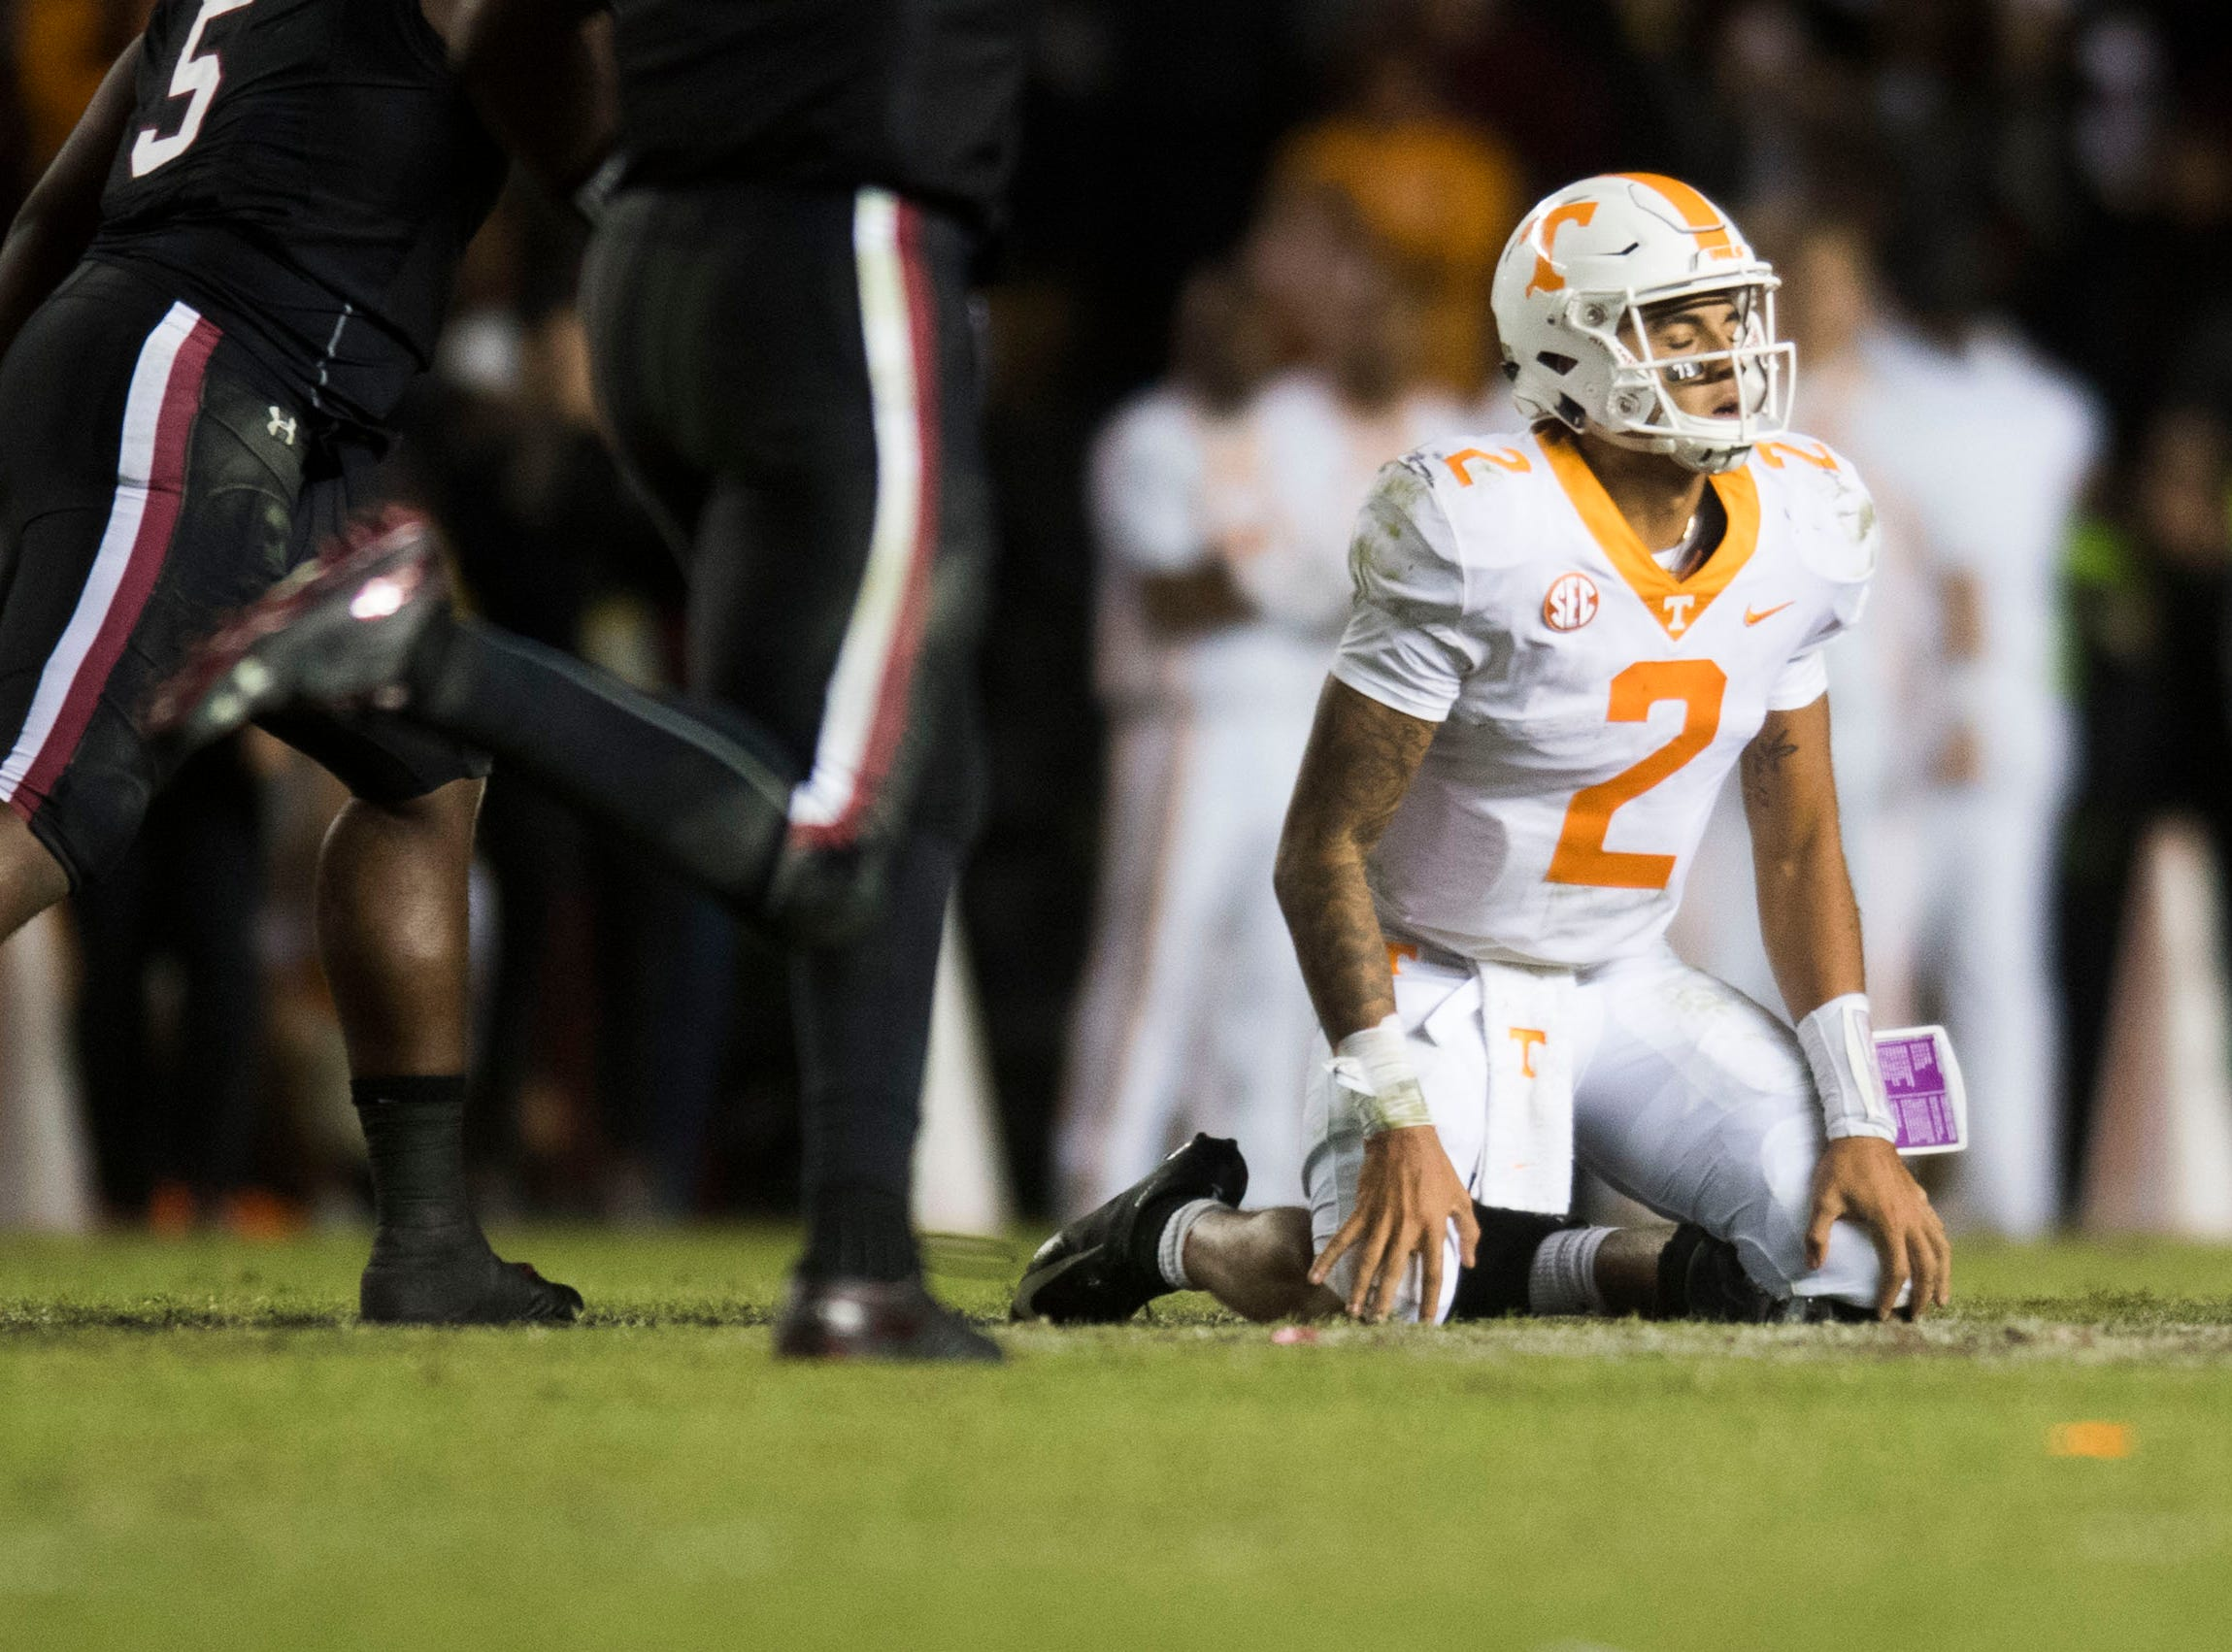 Tennessee quarterback Jarrett Guarantano (2) sits on the ground after being sacked on the fourth down at the end of a game between Tennessee and South Carolina at Williams-Brice Stadium Saturday, Oct. 27, 2018. South Carolina defeated Tennessee 27-24.